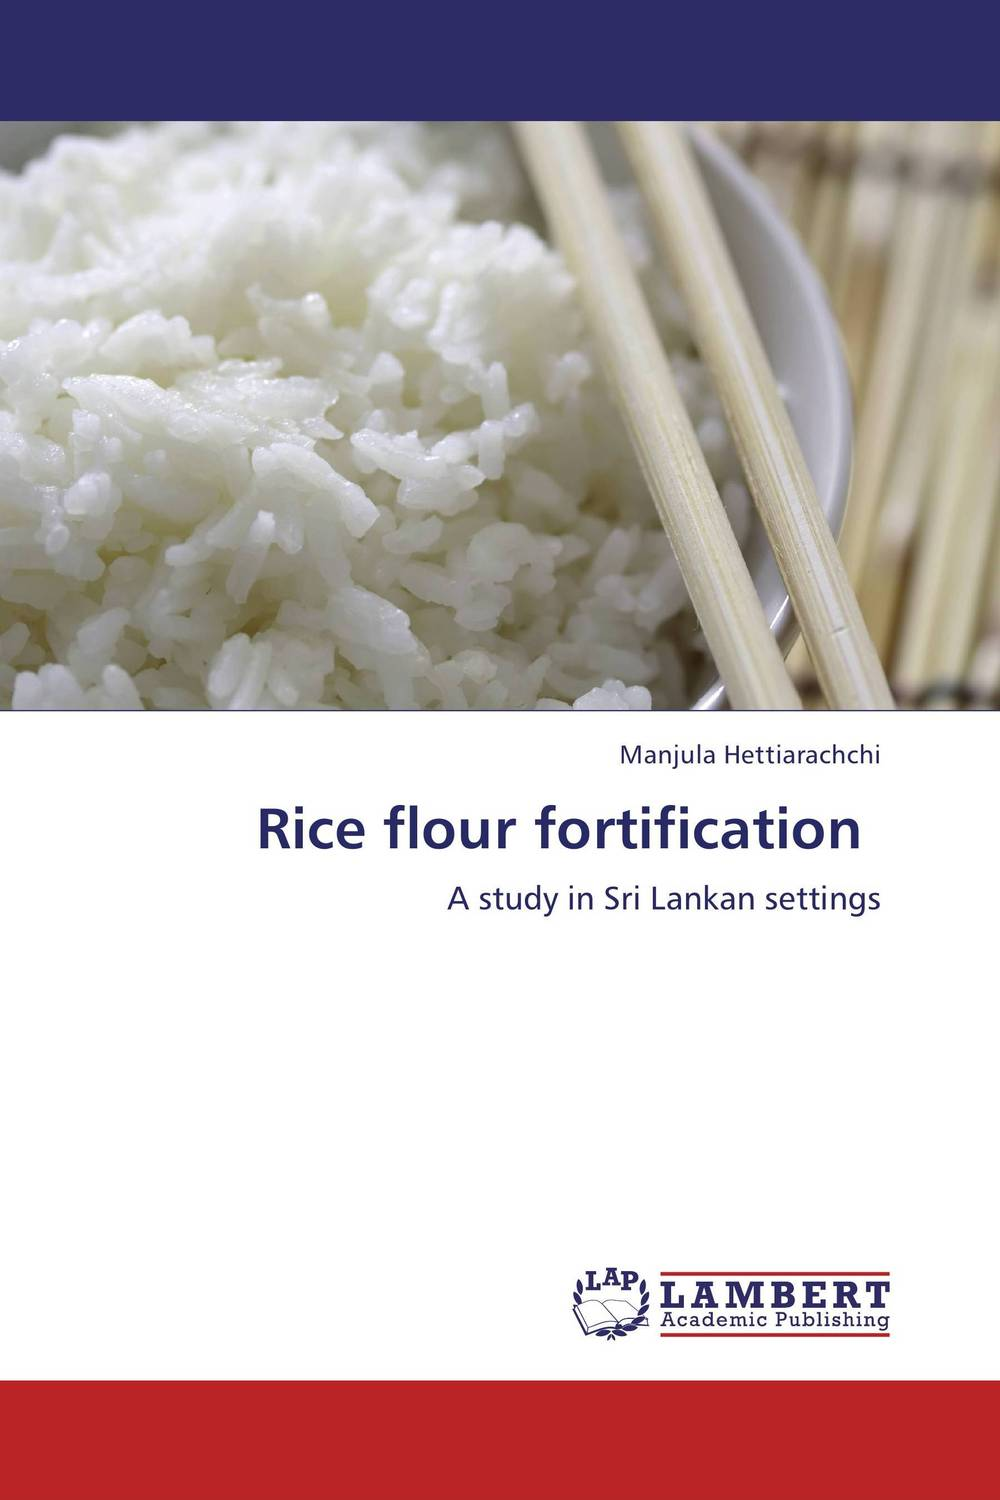 Rice flour fortification brijesh yadav and rakesh kumar soil zinc fractions and nutritional composition of seeded rice